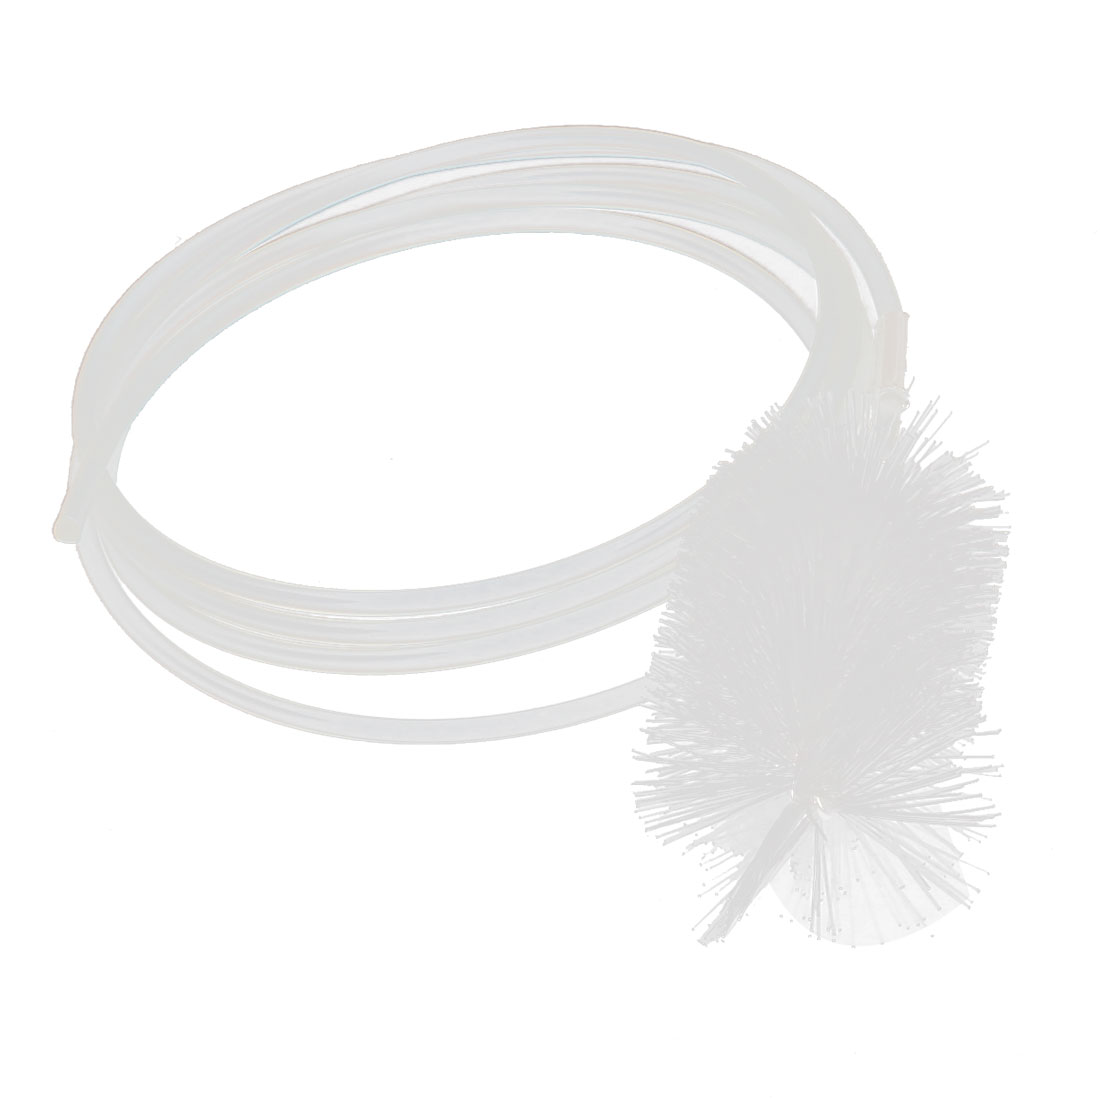 Flexible Water Filter Air Tube Hose Pipe Cleaning Brush for Aquarium Fishbowl